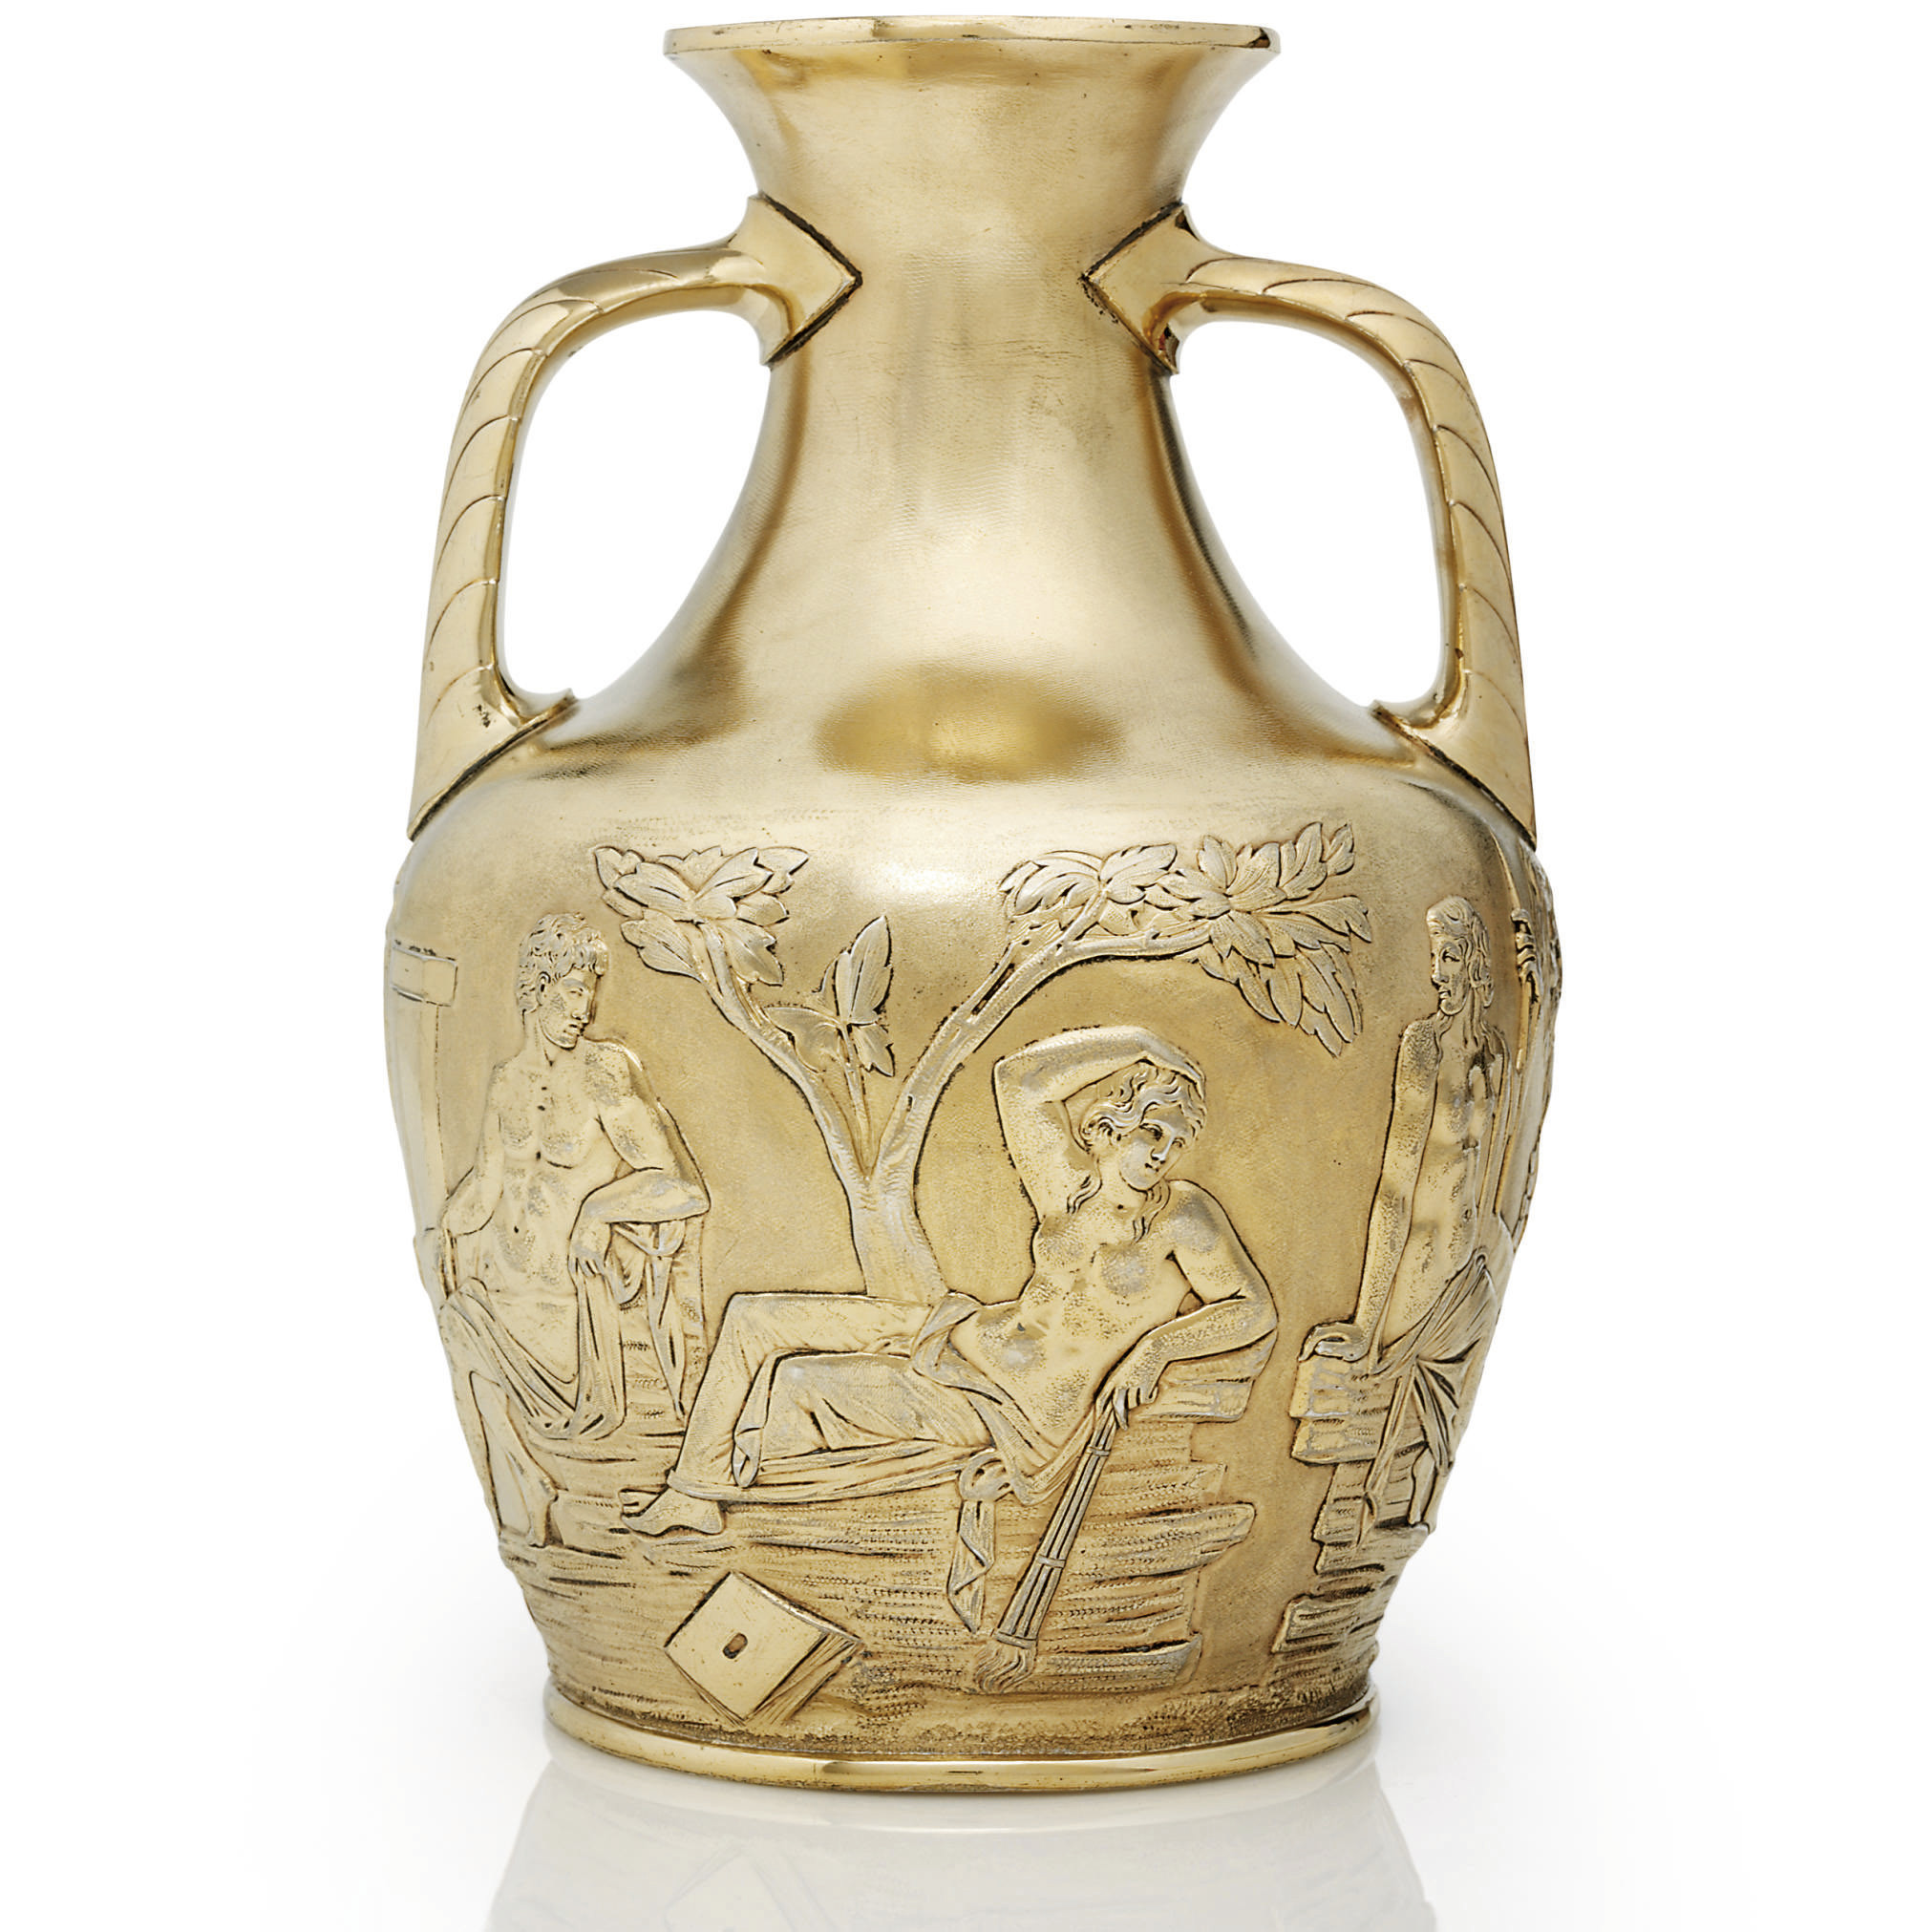 A VICTORIAN SILVER-GILT COPY OF THE PORTLAND VASE